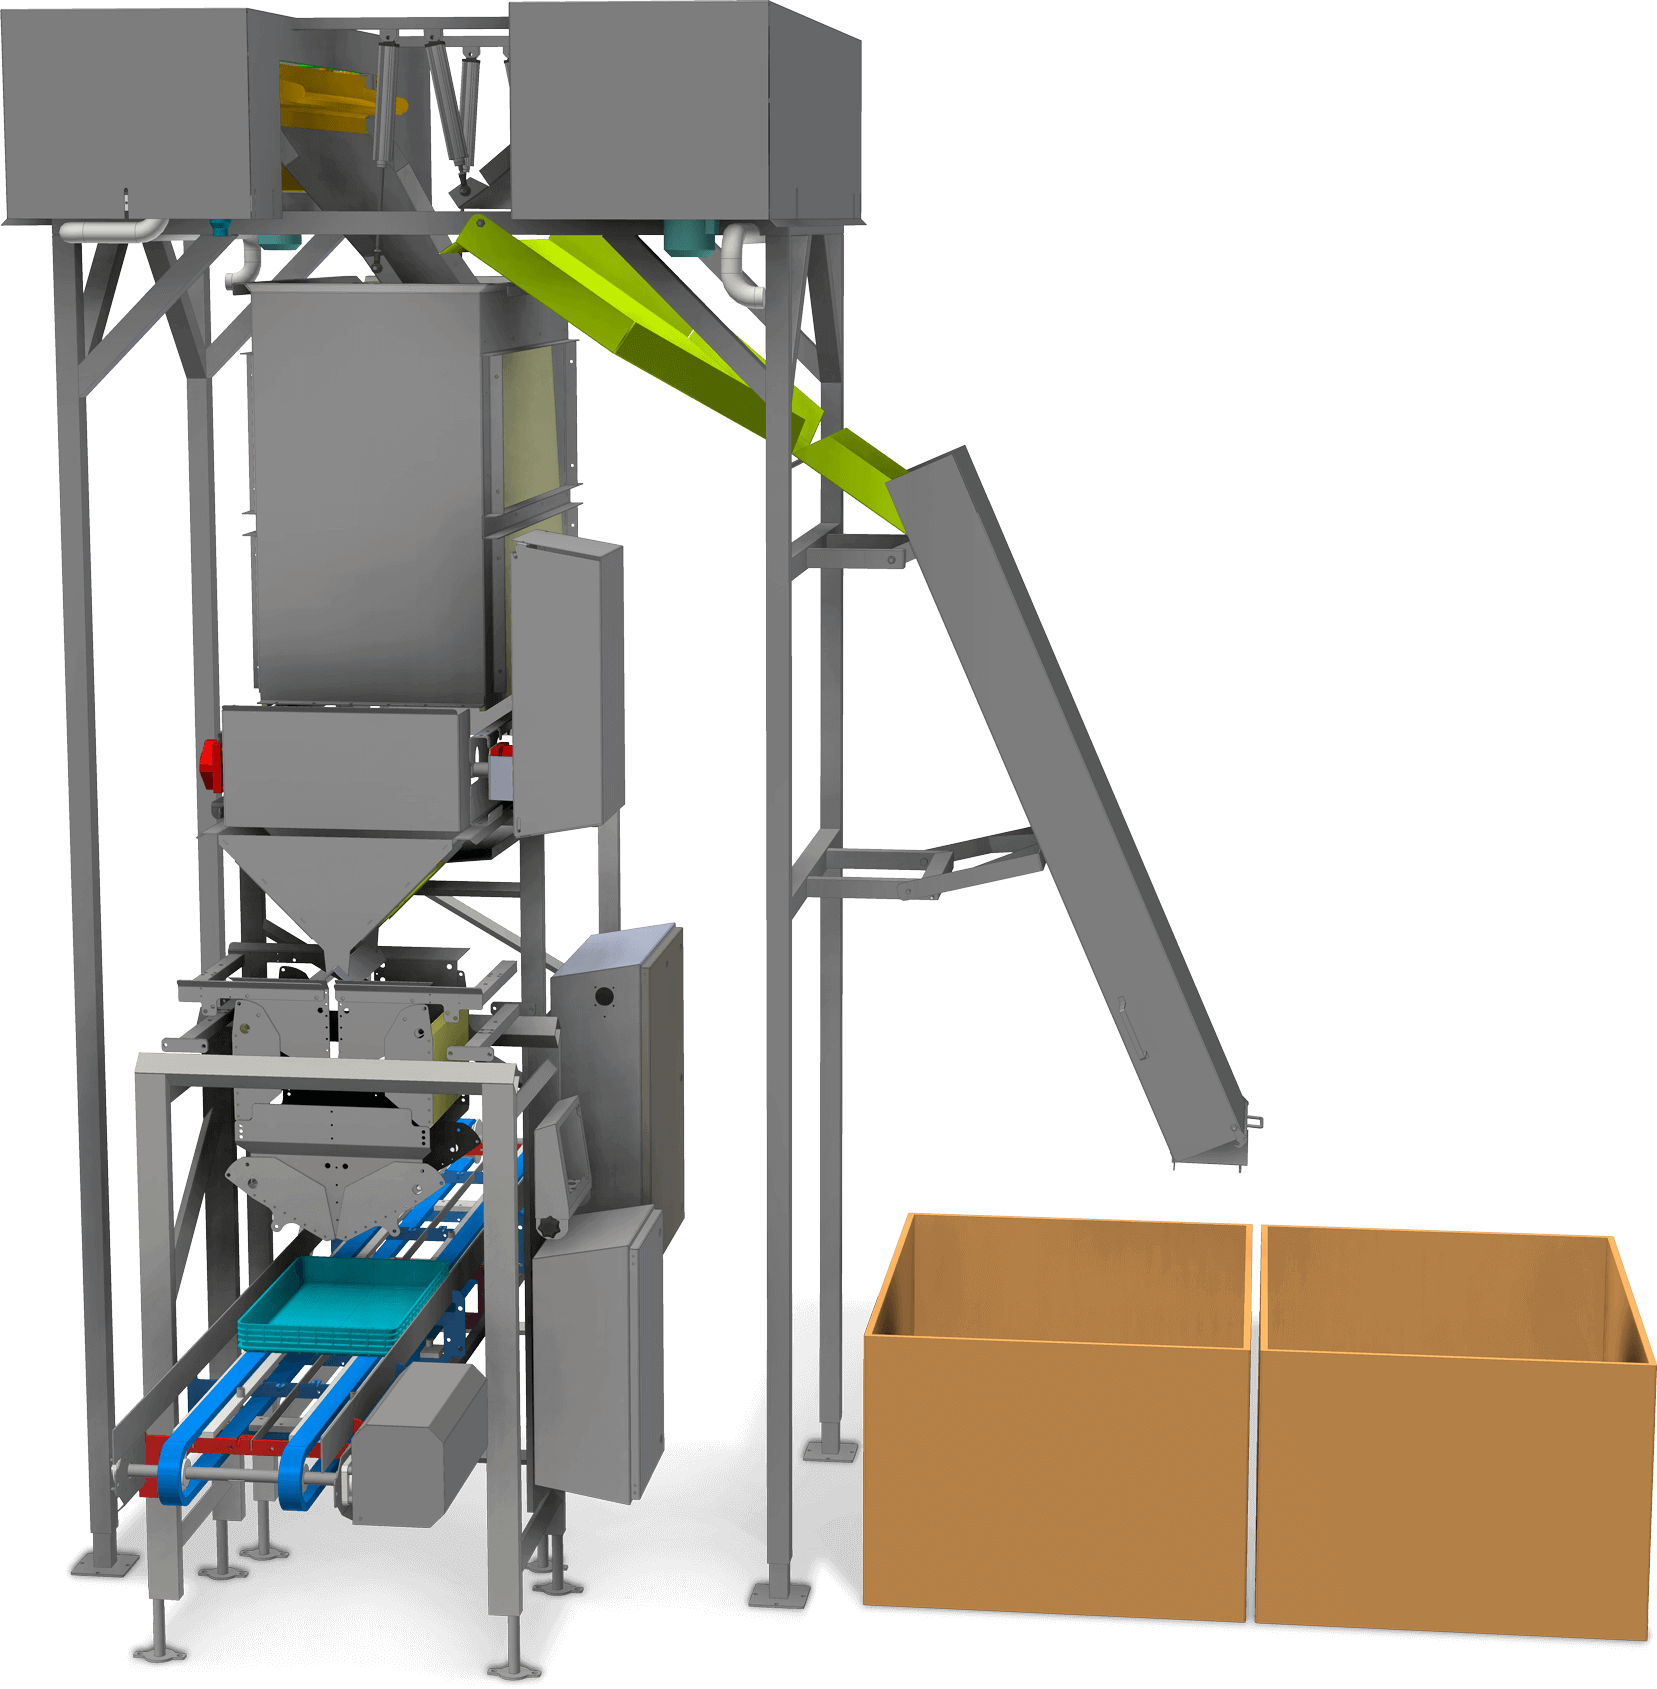 Ice system from Skaginn 3X. Fully Automated - compact - Sub-zero Ice. Learn more about this ice system.